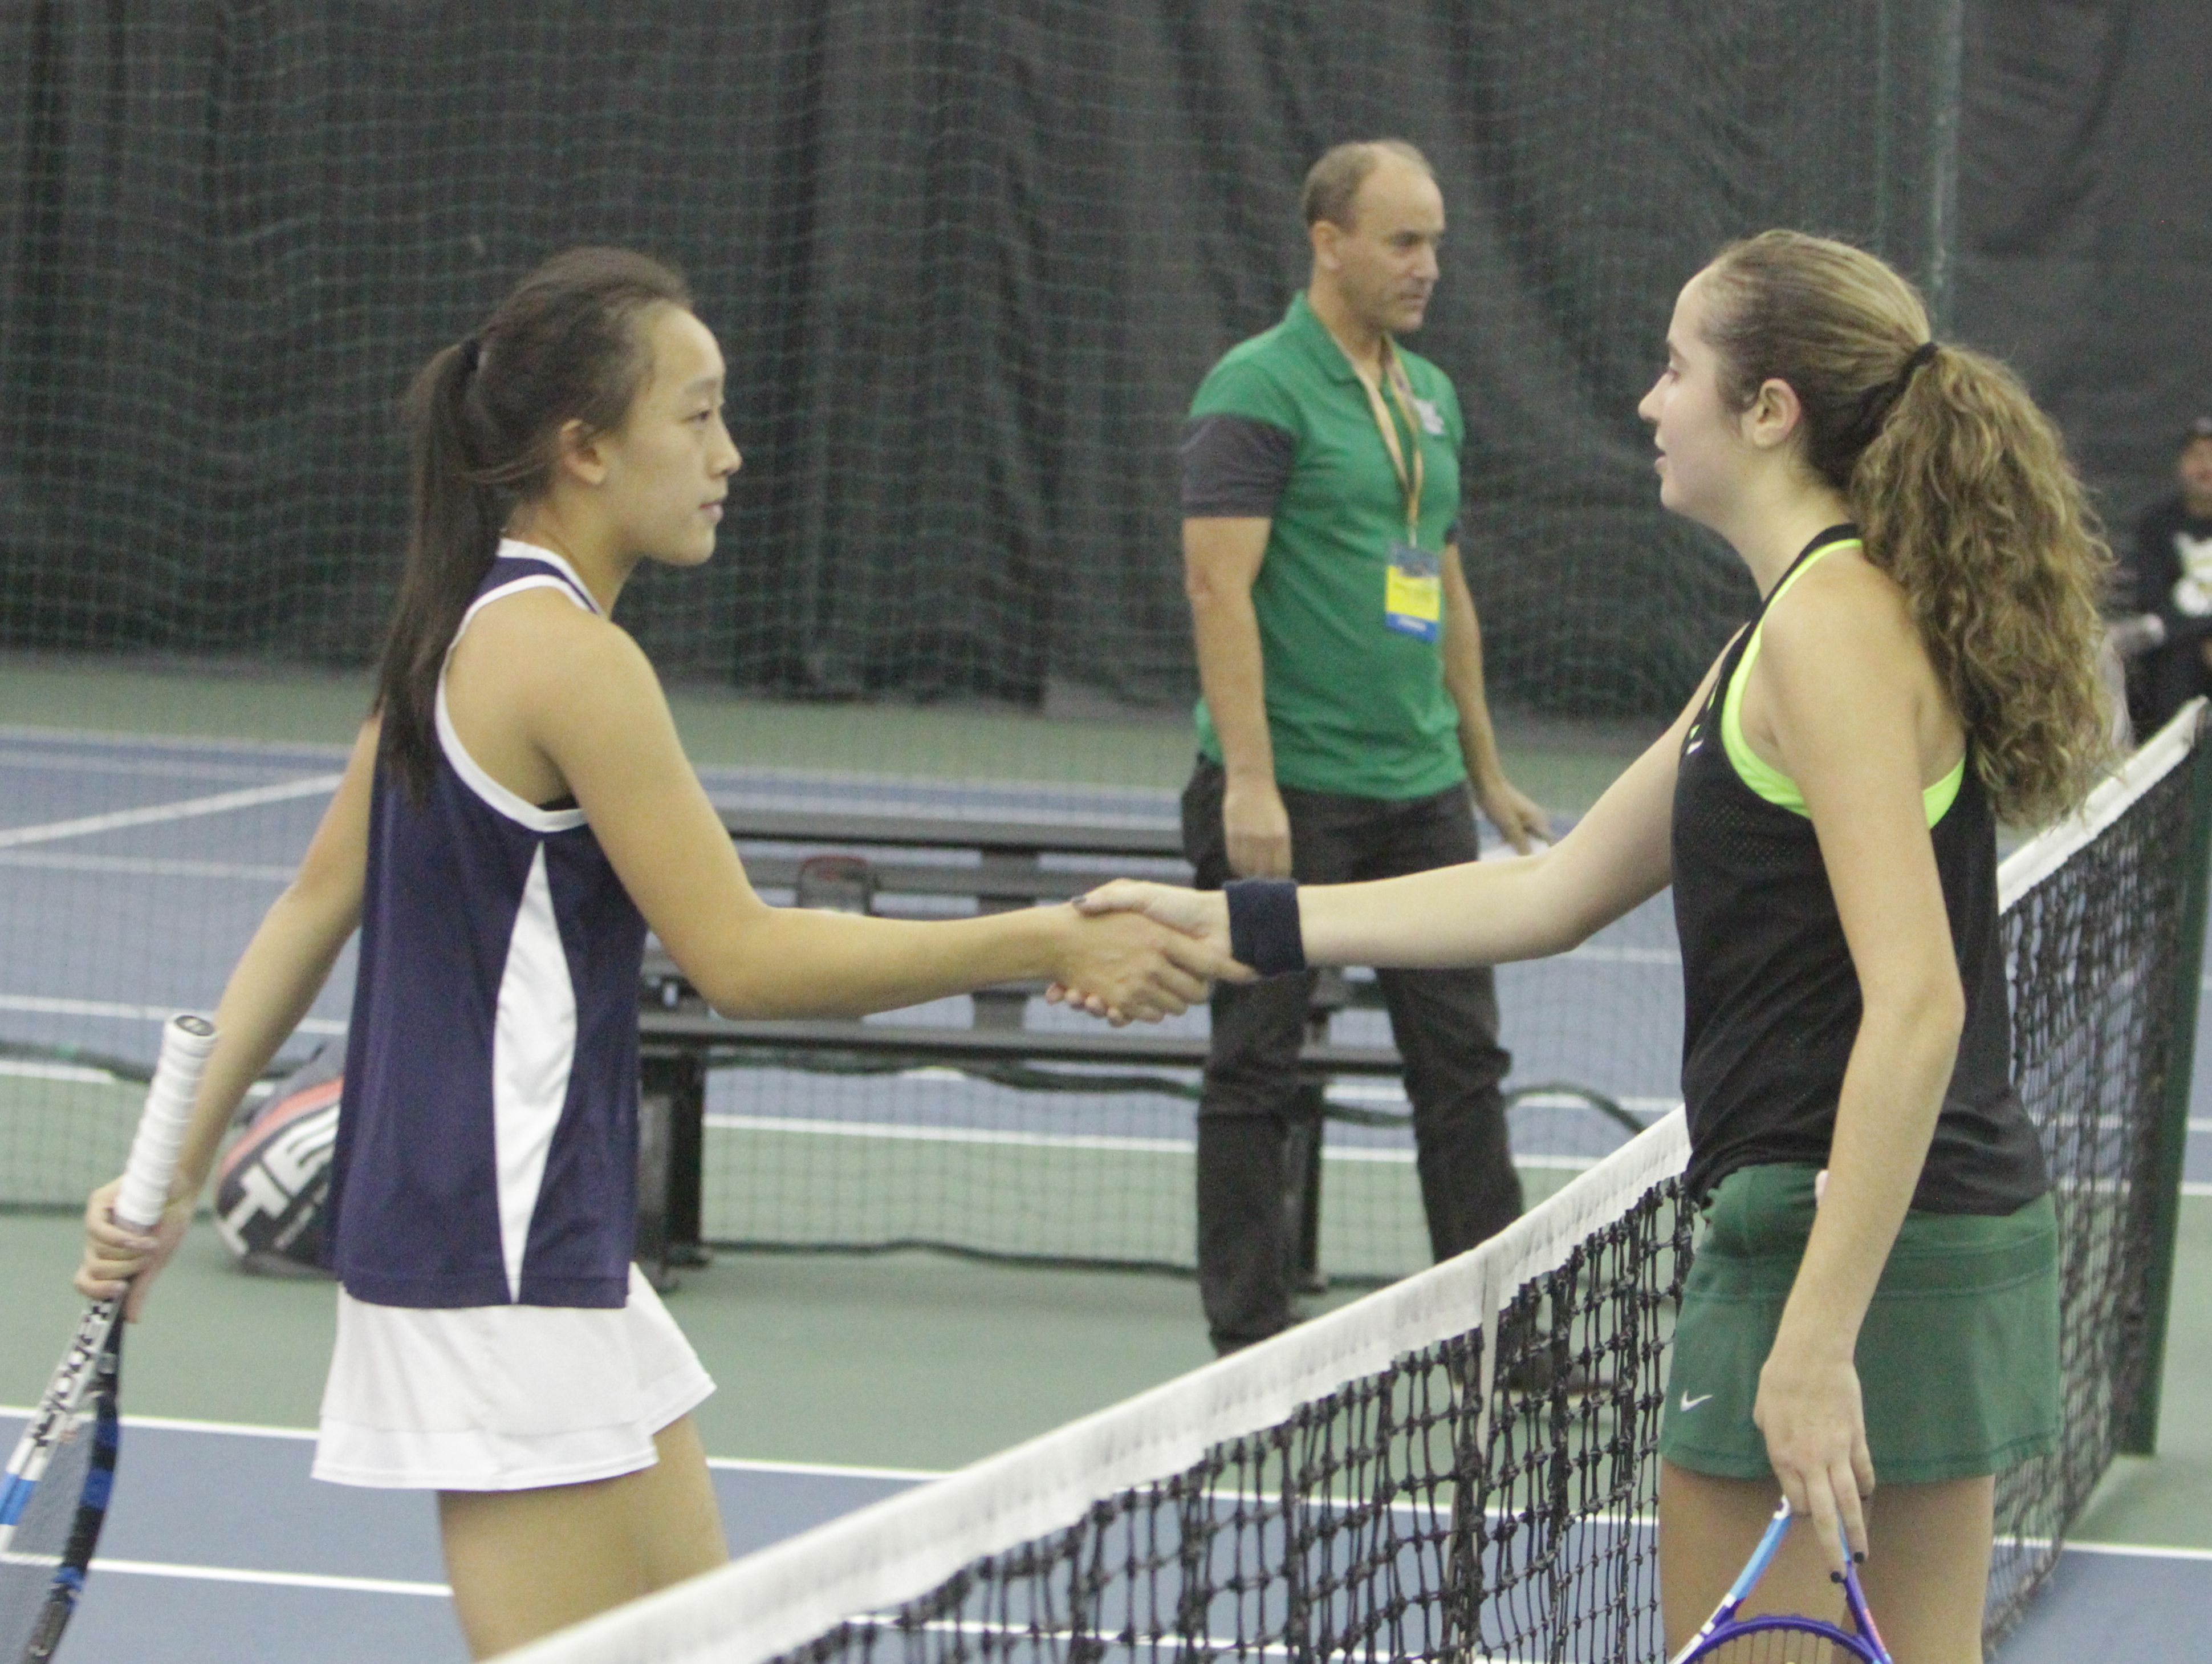 Briarcliff's Rebecca Lim (left) and Yorktown's Caitlin Ferrante shake hands after a quarterfinal match at the New York State girls tennis tournament at Sound Shore Indoor Tennis in Port Chester on Sunday, Oct. 30th, 2016. Ferrante won the match.